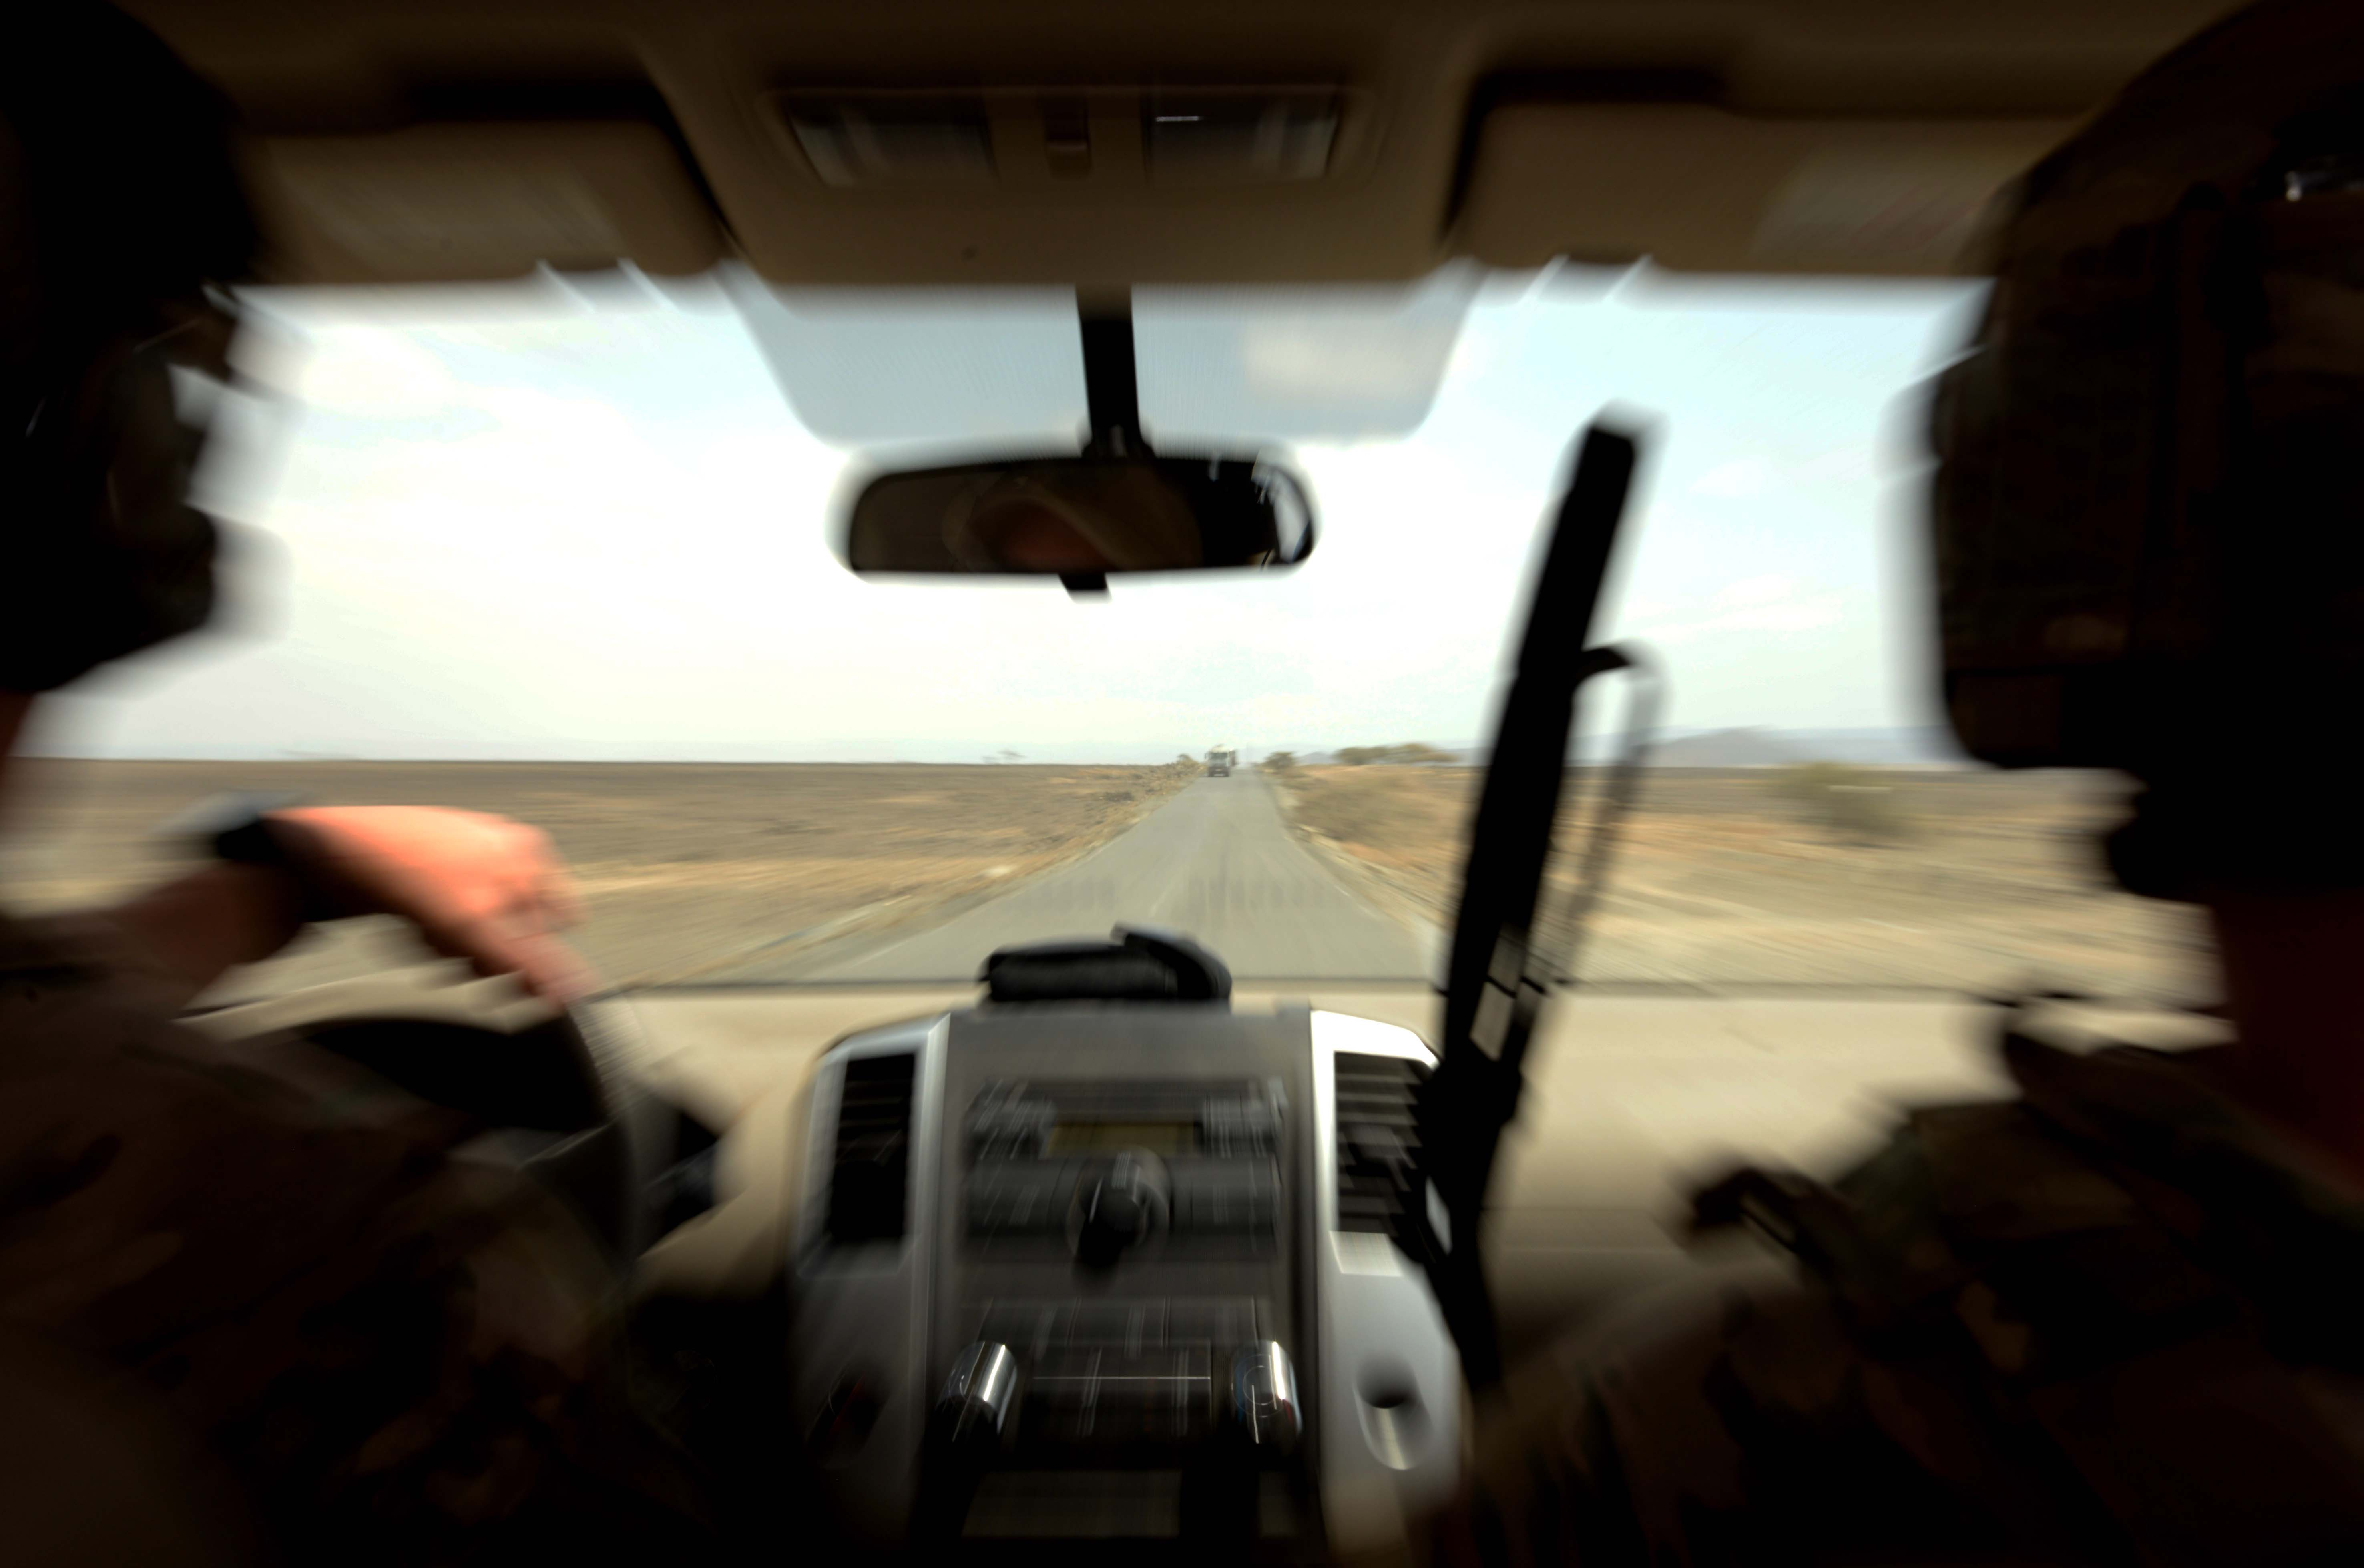 U.S. Air Force Master Sgt. Anthony Nickell, Tactical Air Control Party NCO in charge, and U.S. Air Force Staff Sgt. Corey Johnson, TACP member, lead a convoy as quickly and safely as possible during a tactical exercise with the French Air Force Feb. 24, 2016, in Djibouti. With a giant orange marker atop the vehicle, the two TACPs led the convoy under the close watch and escort of a French Air Force Mirage 2000 fighter jet. (U.S. Air Force photo by Staff Sgt. Kate Thornton)